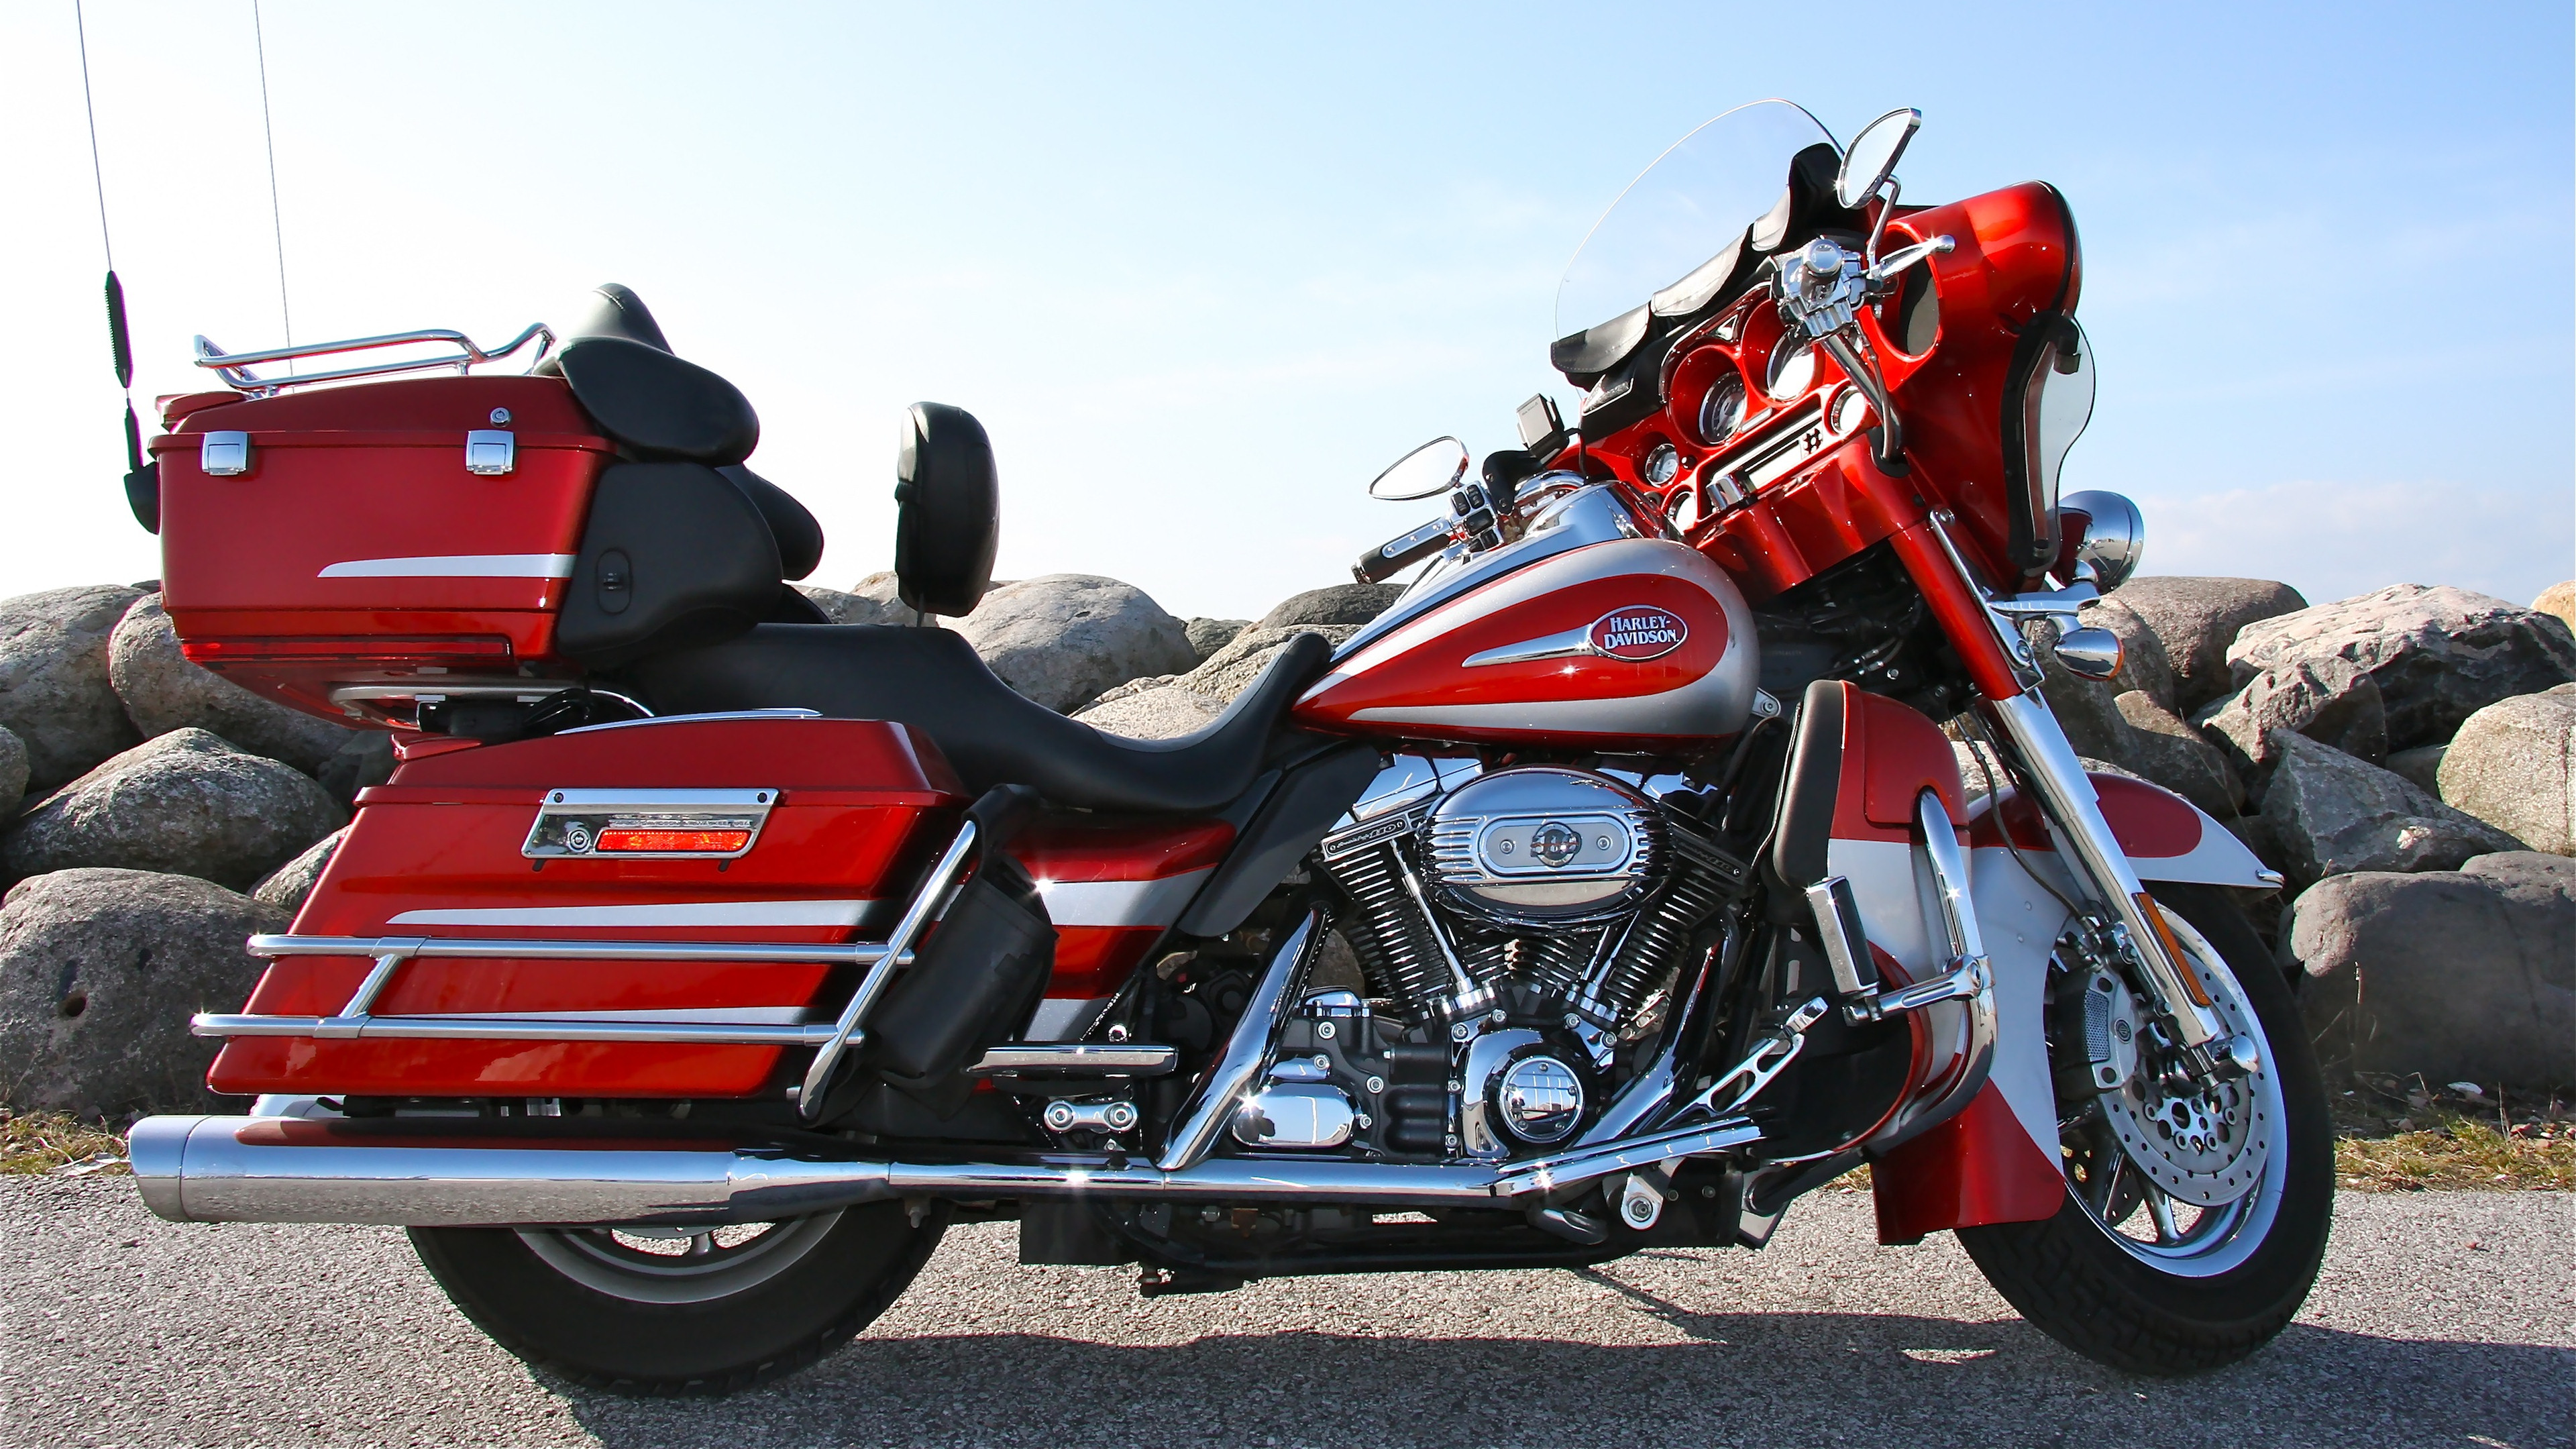 3840x2160 - Harley-Davidson Electra Glide Ultra Classic Wallpapers 11